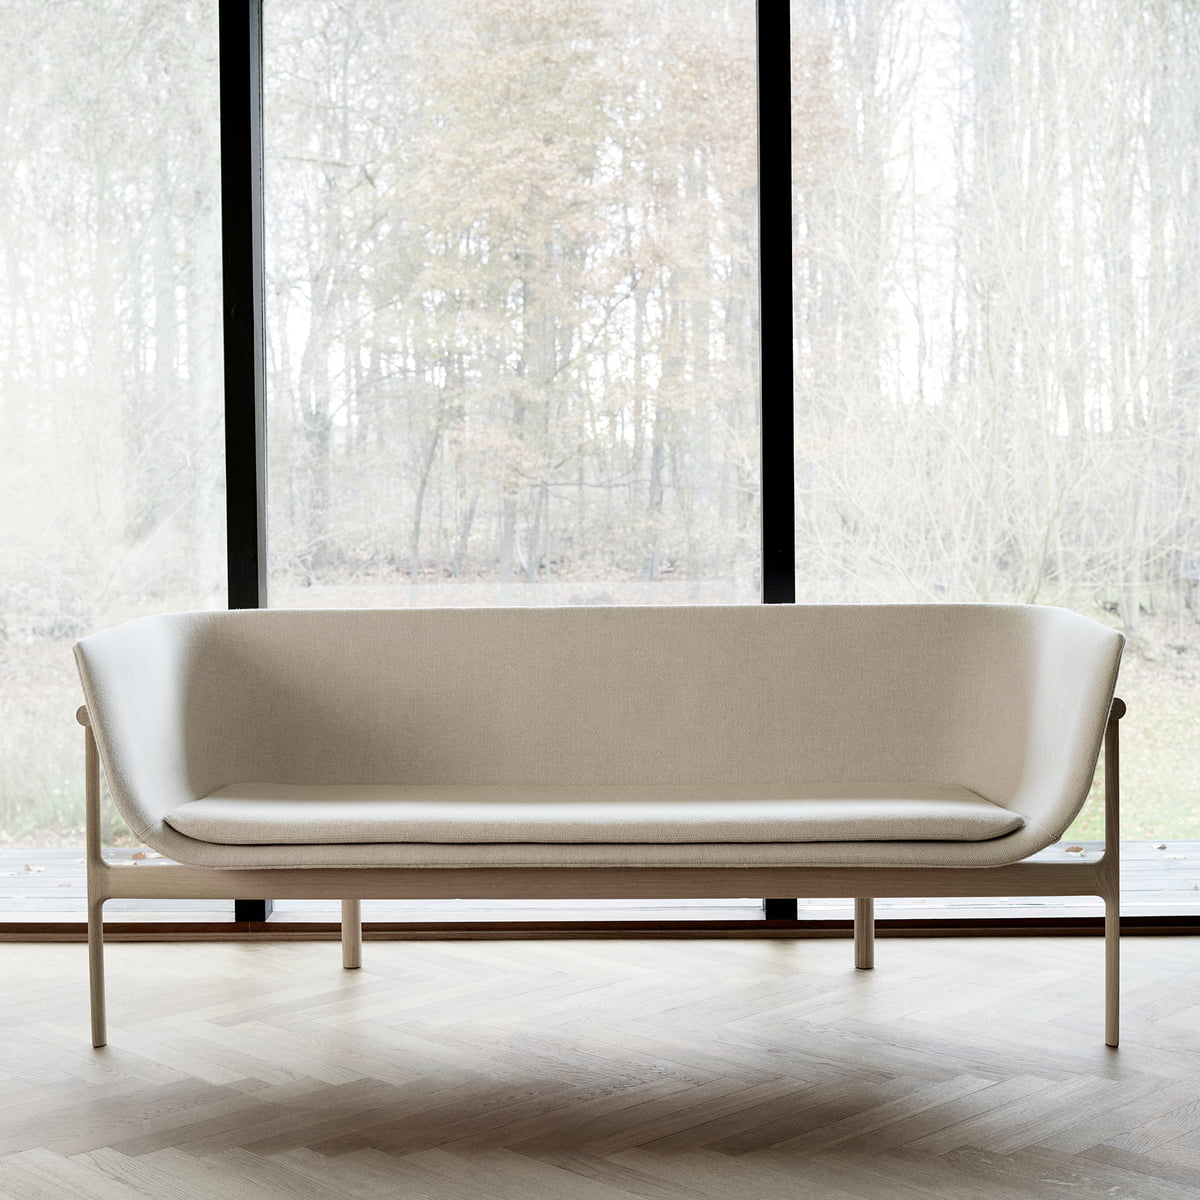 Lounge Designer Furniture: Tailor Lounge Sofa By Menu